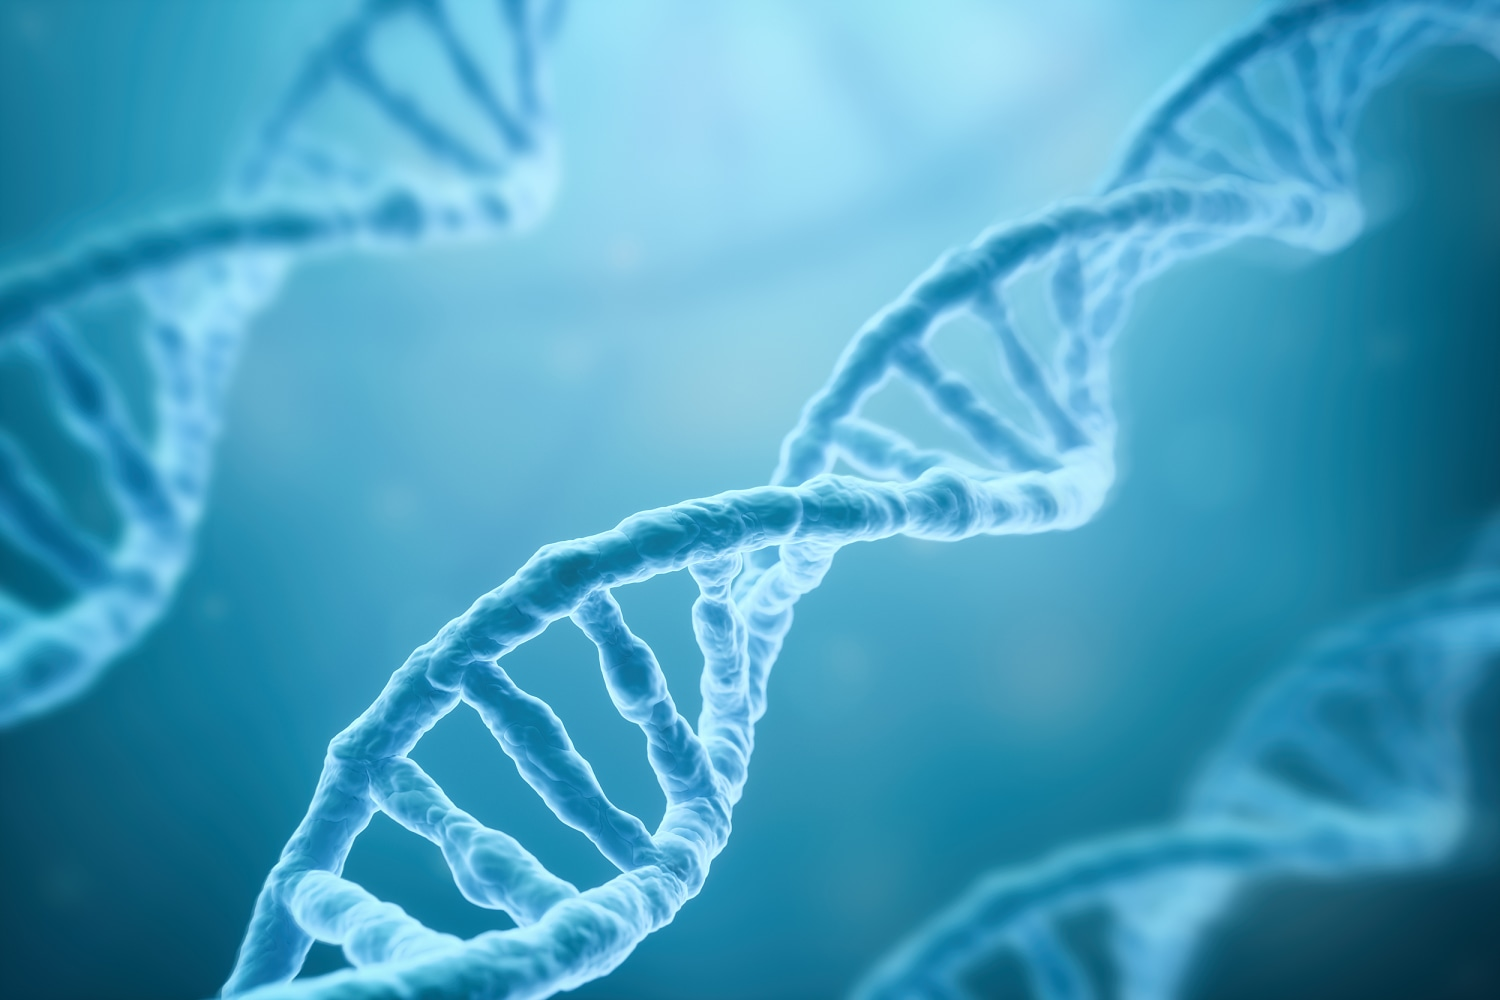 DNA Scan Uncovers 18 Genes Newly Associated With Autism